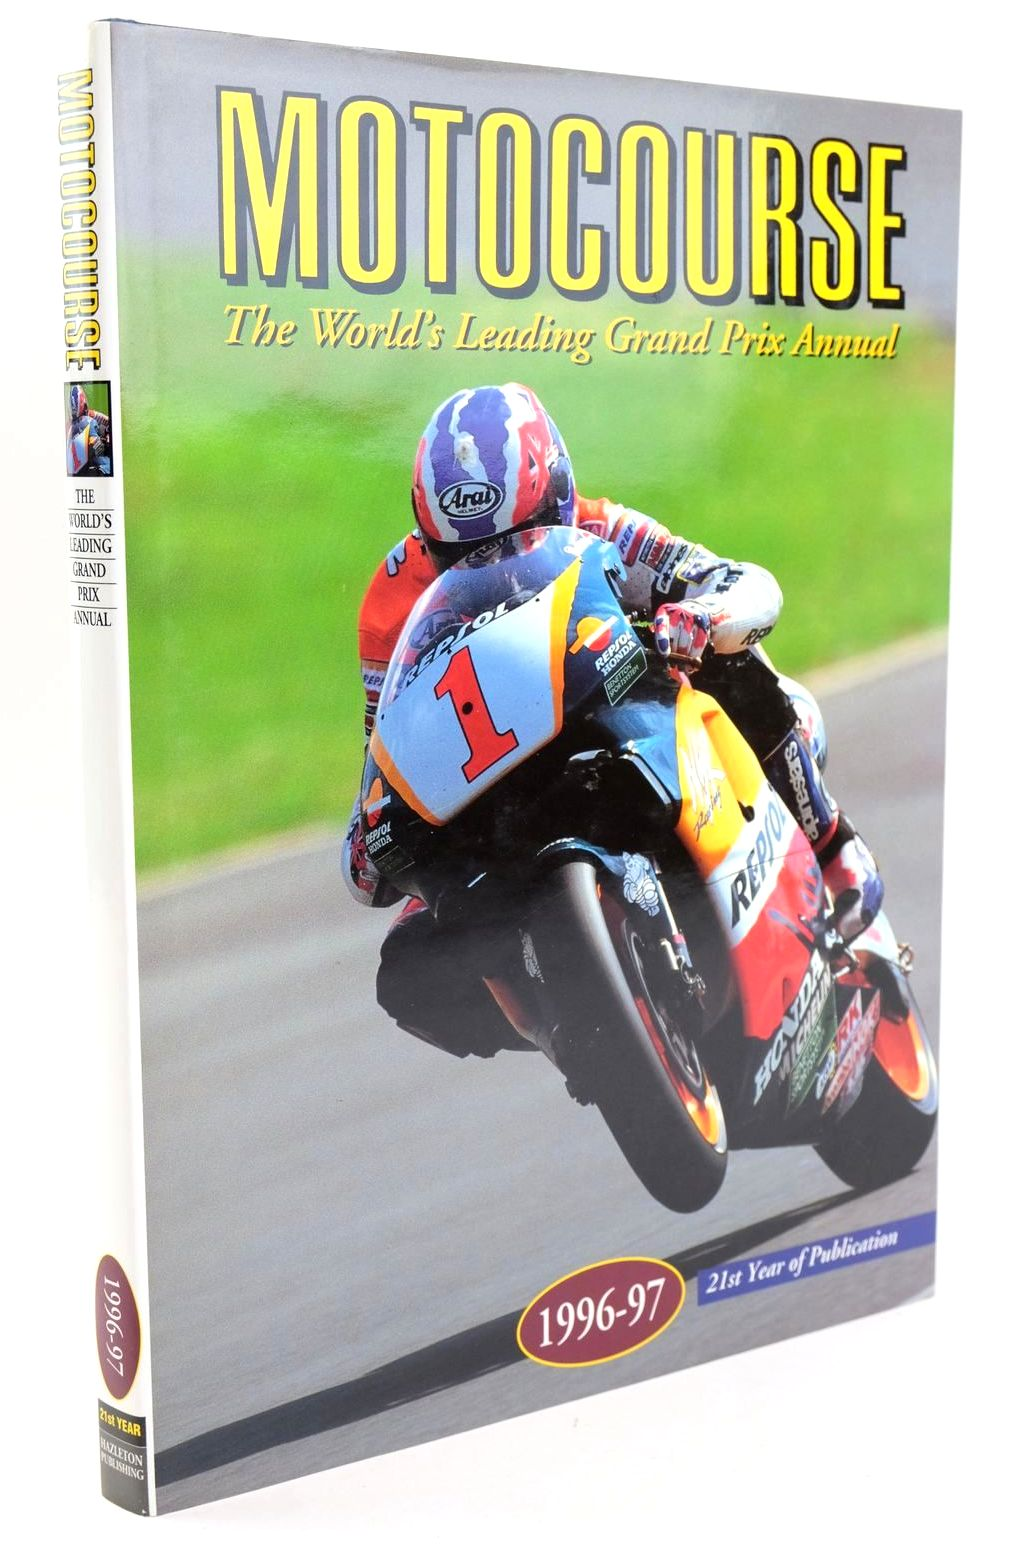 Photo of MOTOCOURSE 1996-97 published by Hazleton Publishing (STOCK CODE: 1319322)  for sale by Stella & Rose's Books